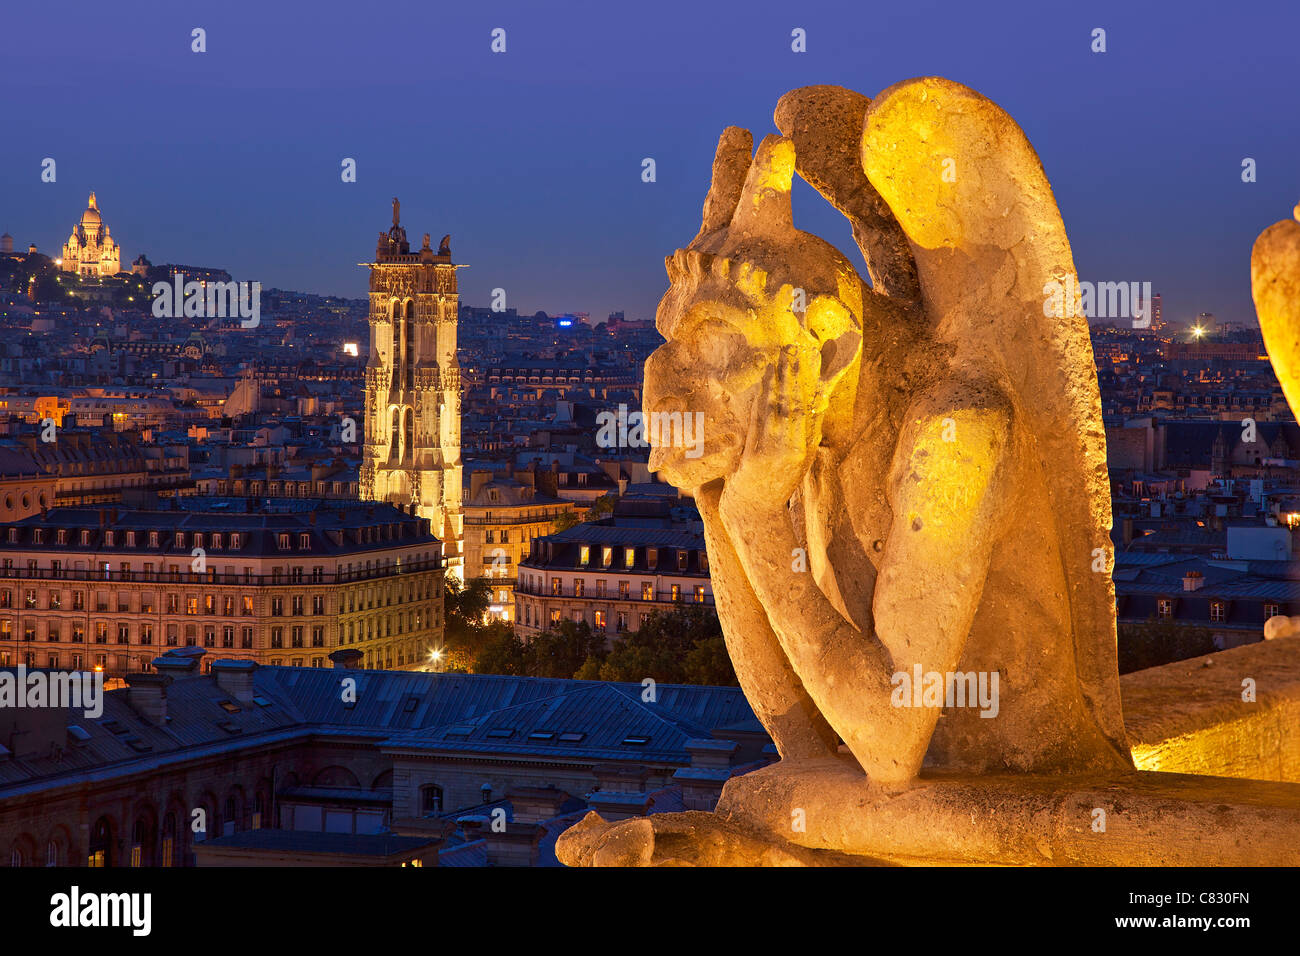 France, Paris, view over Paris from Notre Dame Cathedral - Stock Image